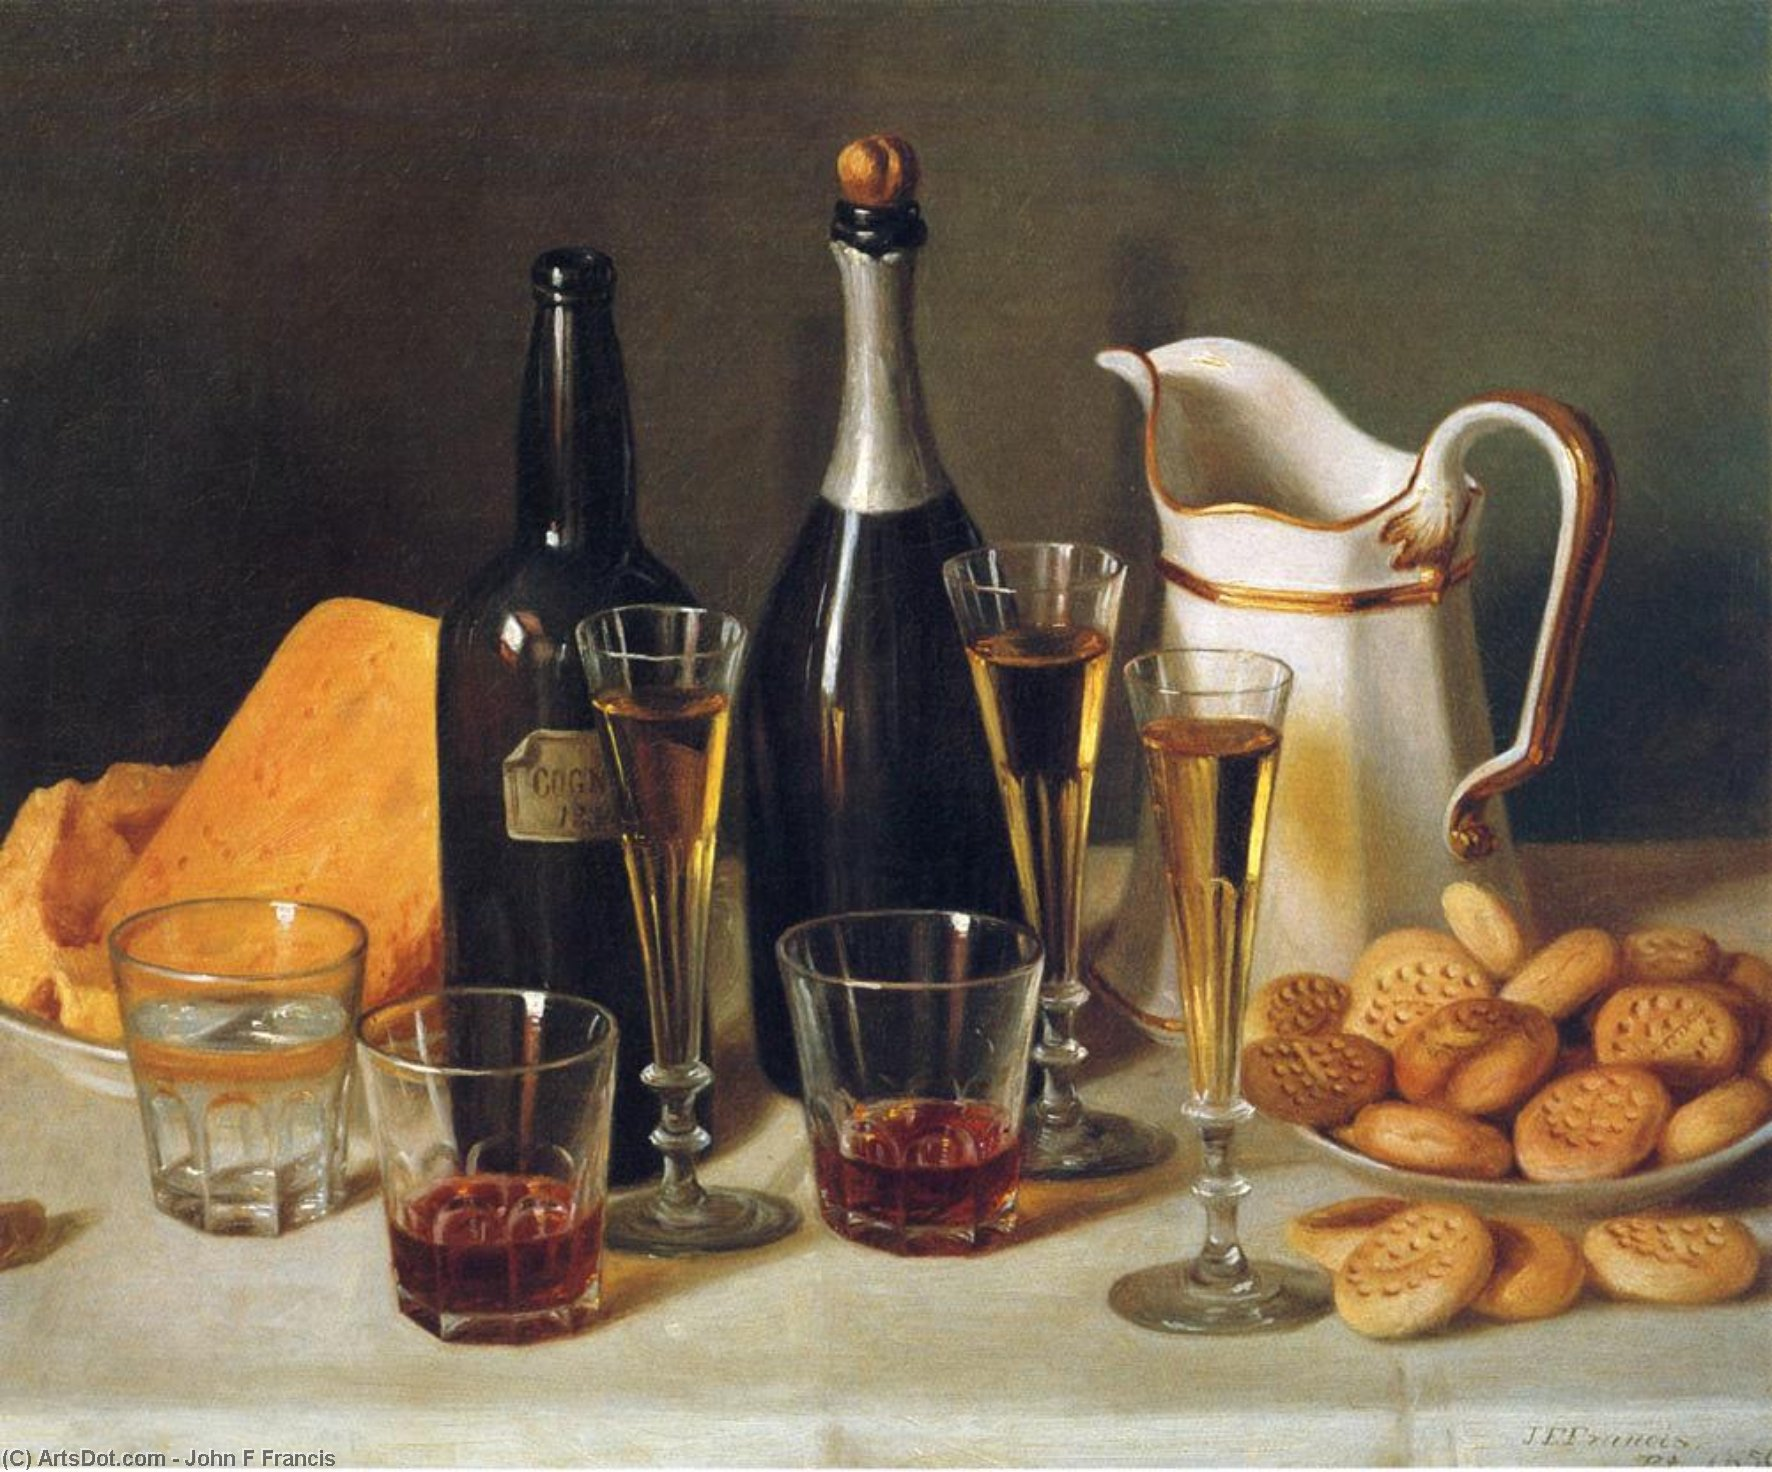 Still Life: Cognac and Biscuits, Oil On Canvas by John F Francis (1905-1990, United States)